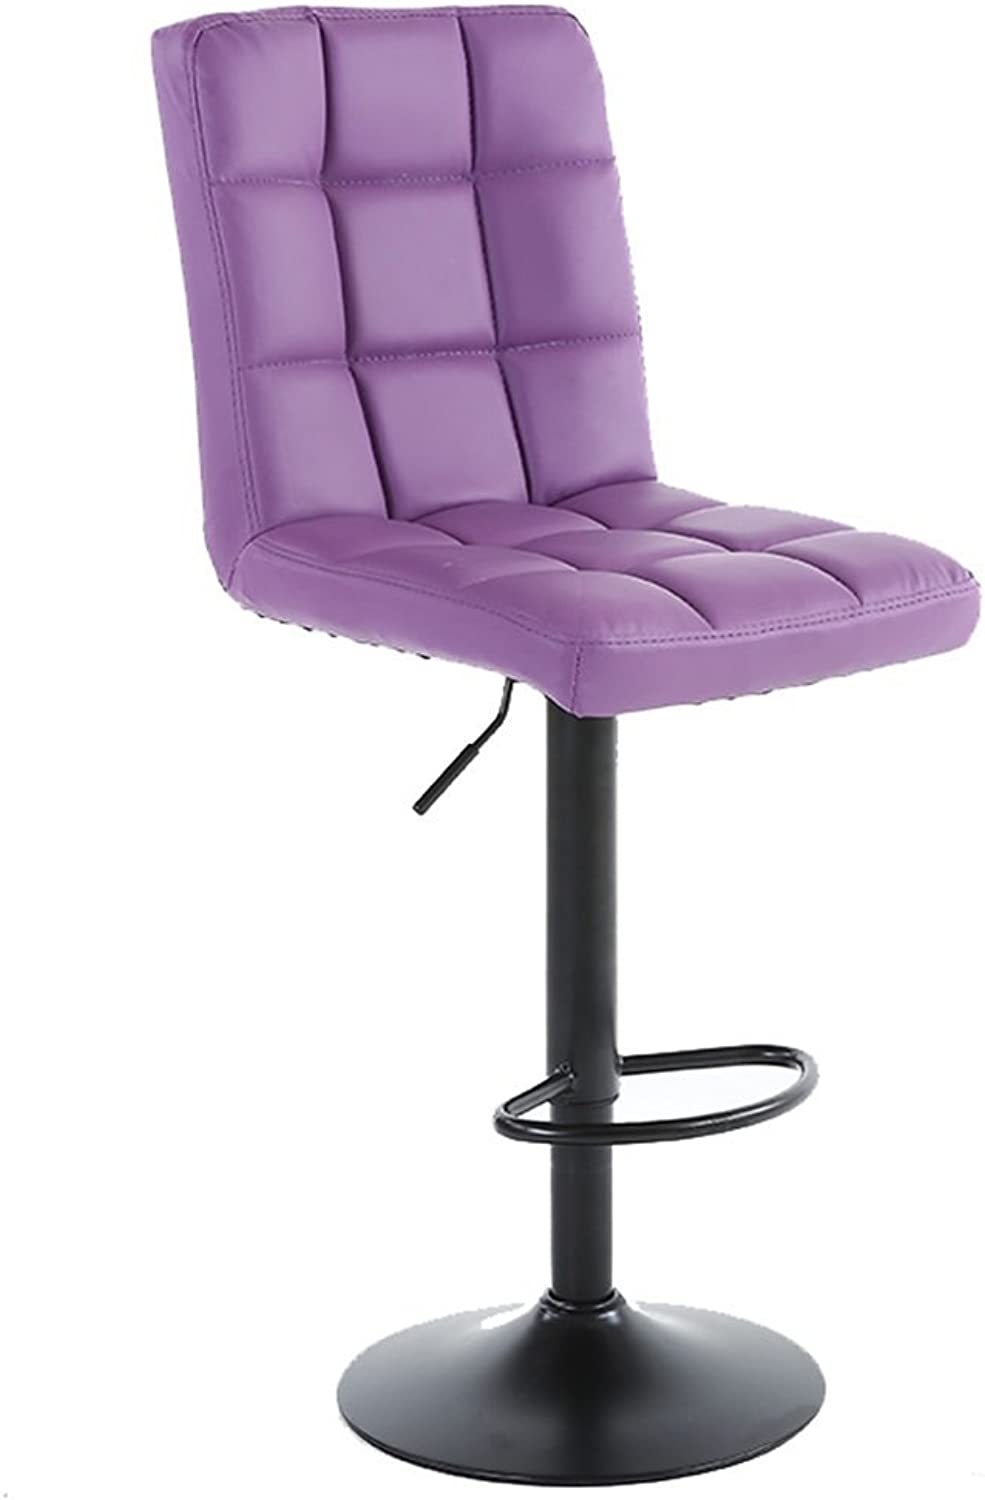 High Stool Bar Kitchen Breakfast Stool Dining Chair Can Lift up and Down Swivel Chair Bar Stool Tall Chairs Counter Chair (color   Purple)